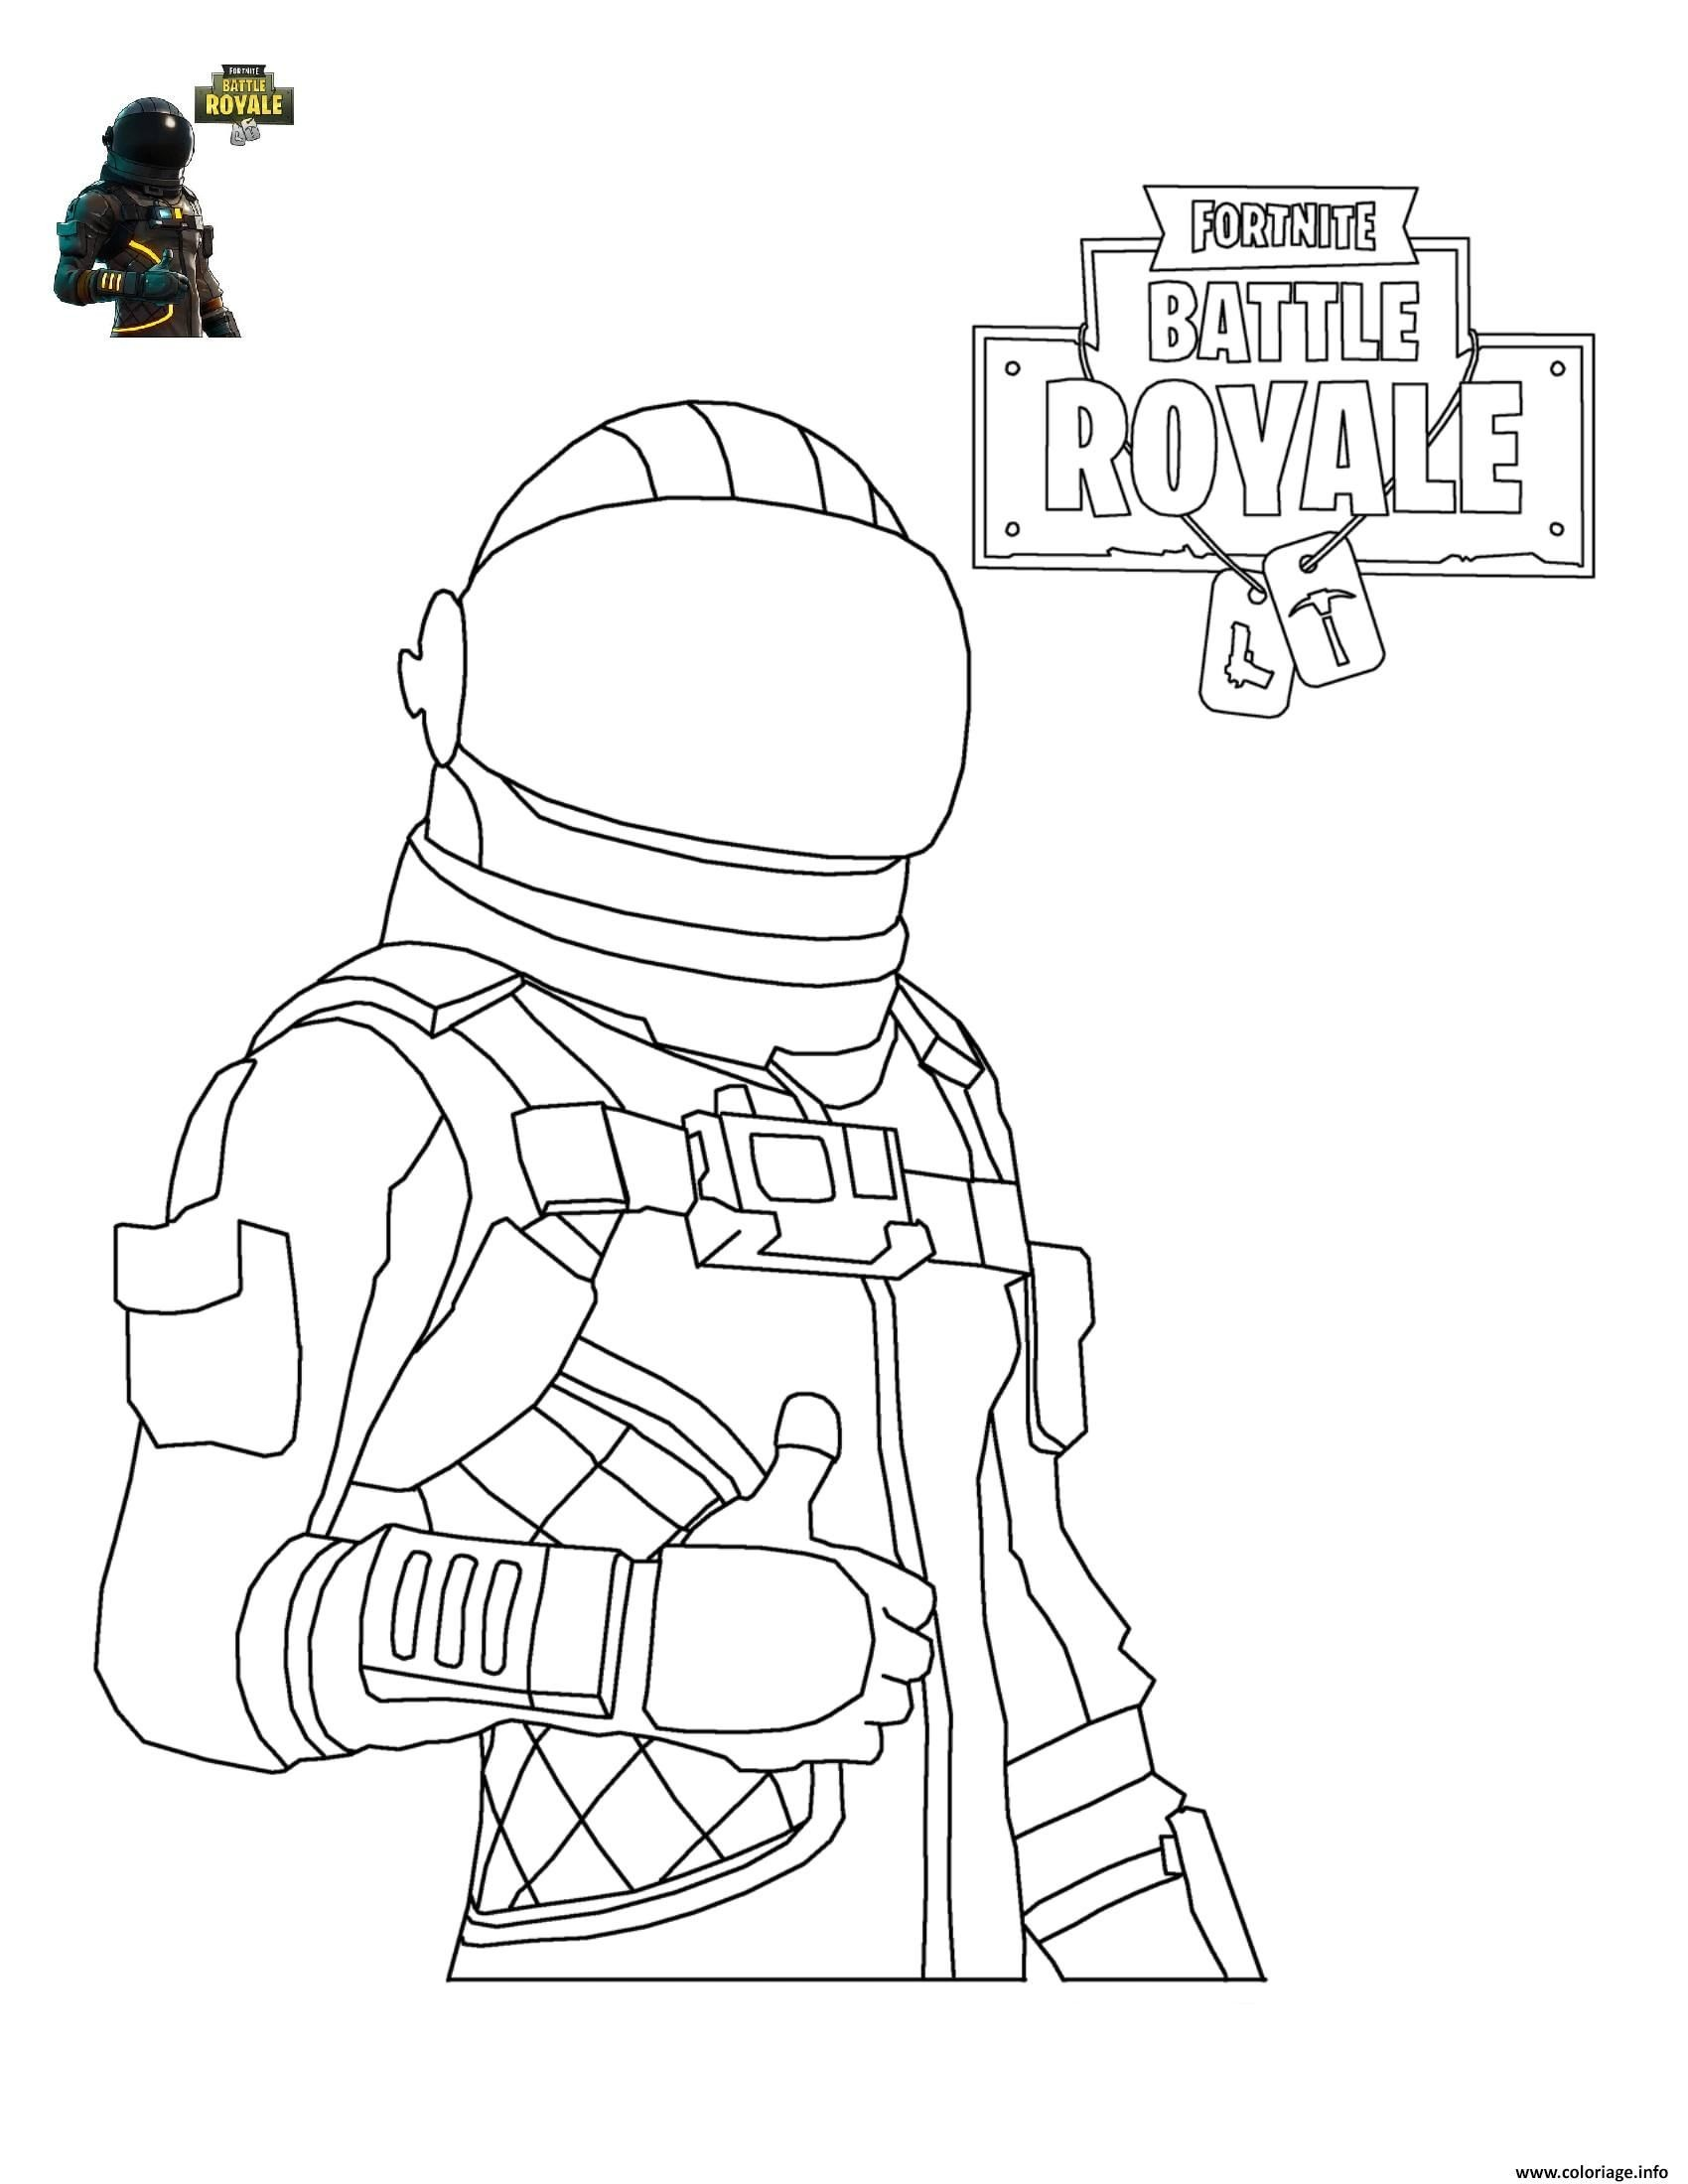 Coloriage De fortnite A Imprimer Gratuitement Awesome Coloriage fortnite Battle Royale Personnage 4   Imprimer En